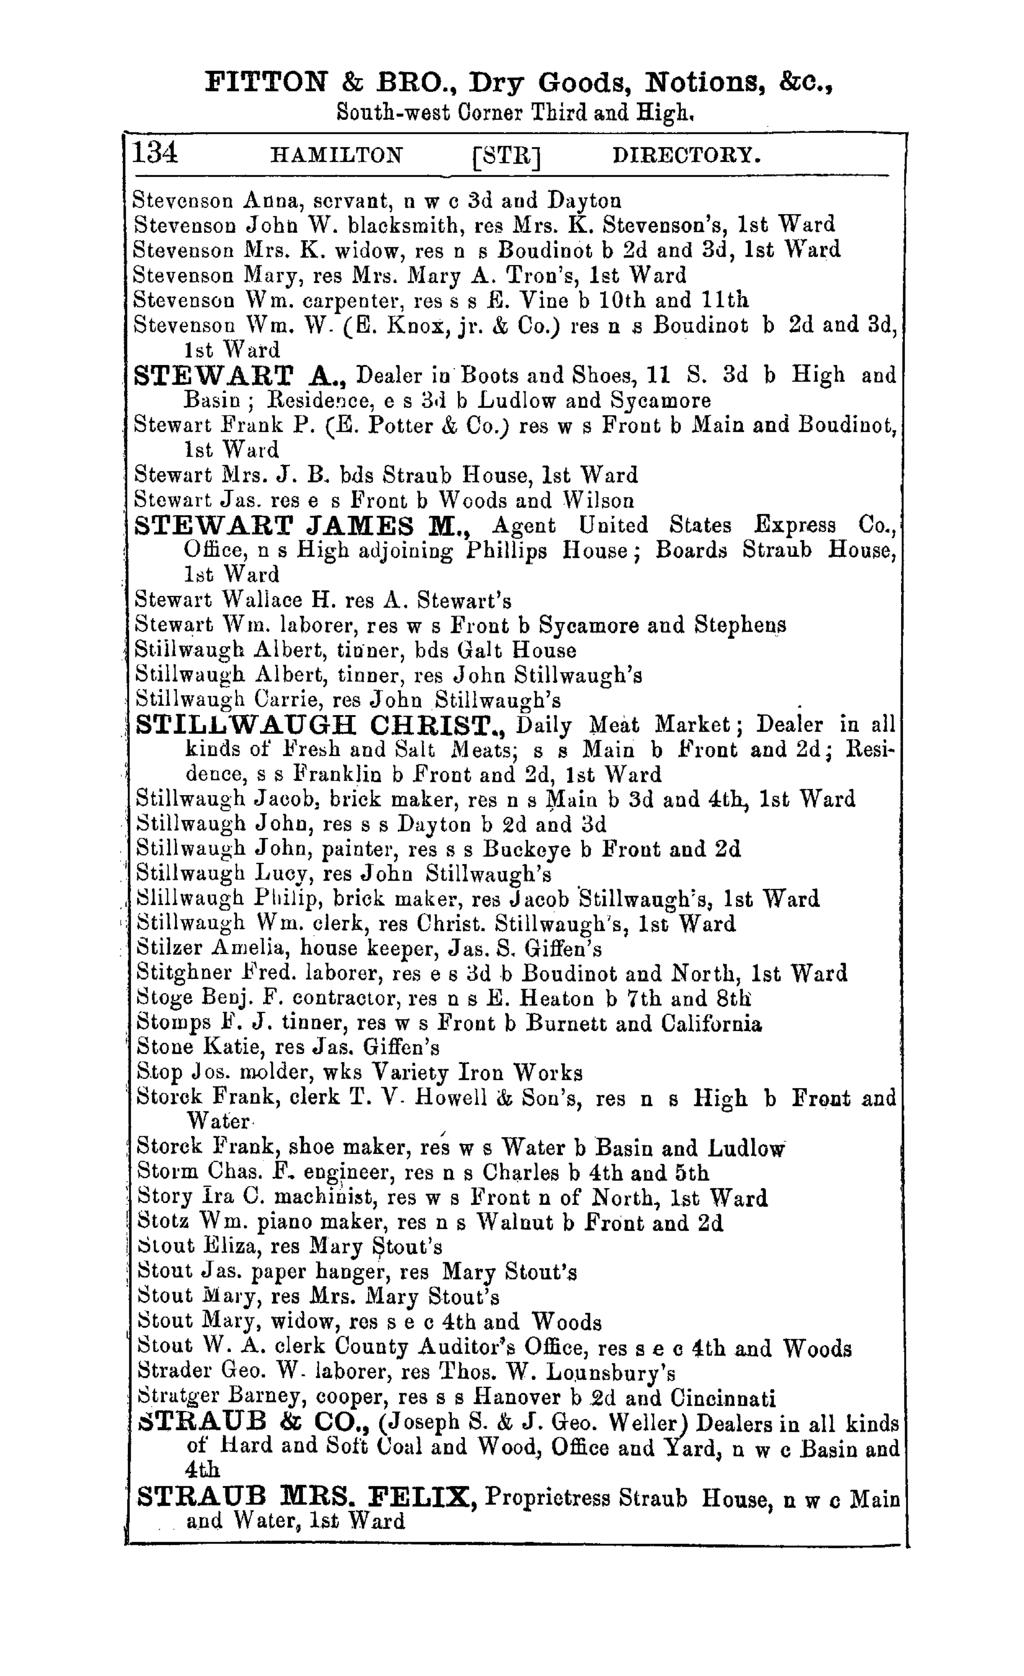 FITTON & BRO., Dry Goods, Notions, &c., South-west Oorner Third and High. 134 HAMILTON [STRJ DIRECTORY. Stevenson Anna, servant, n w c 3d and Dayton Stevenson John W. blacksmith, res Mrs. K.